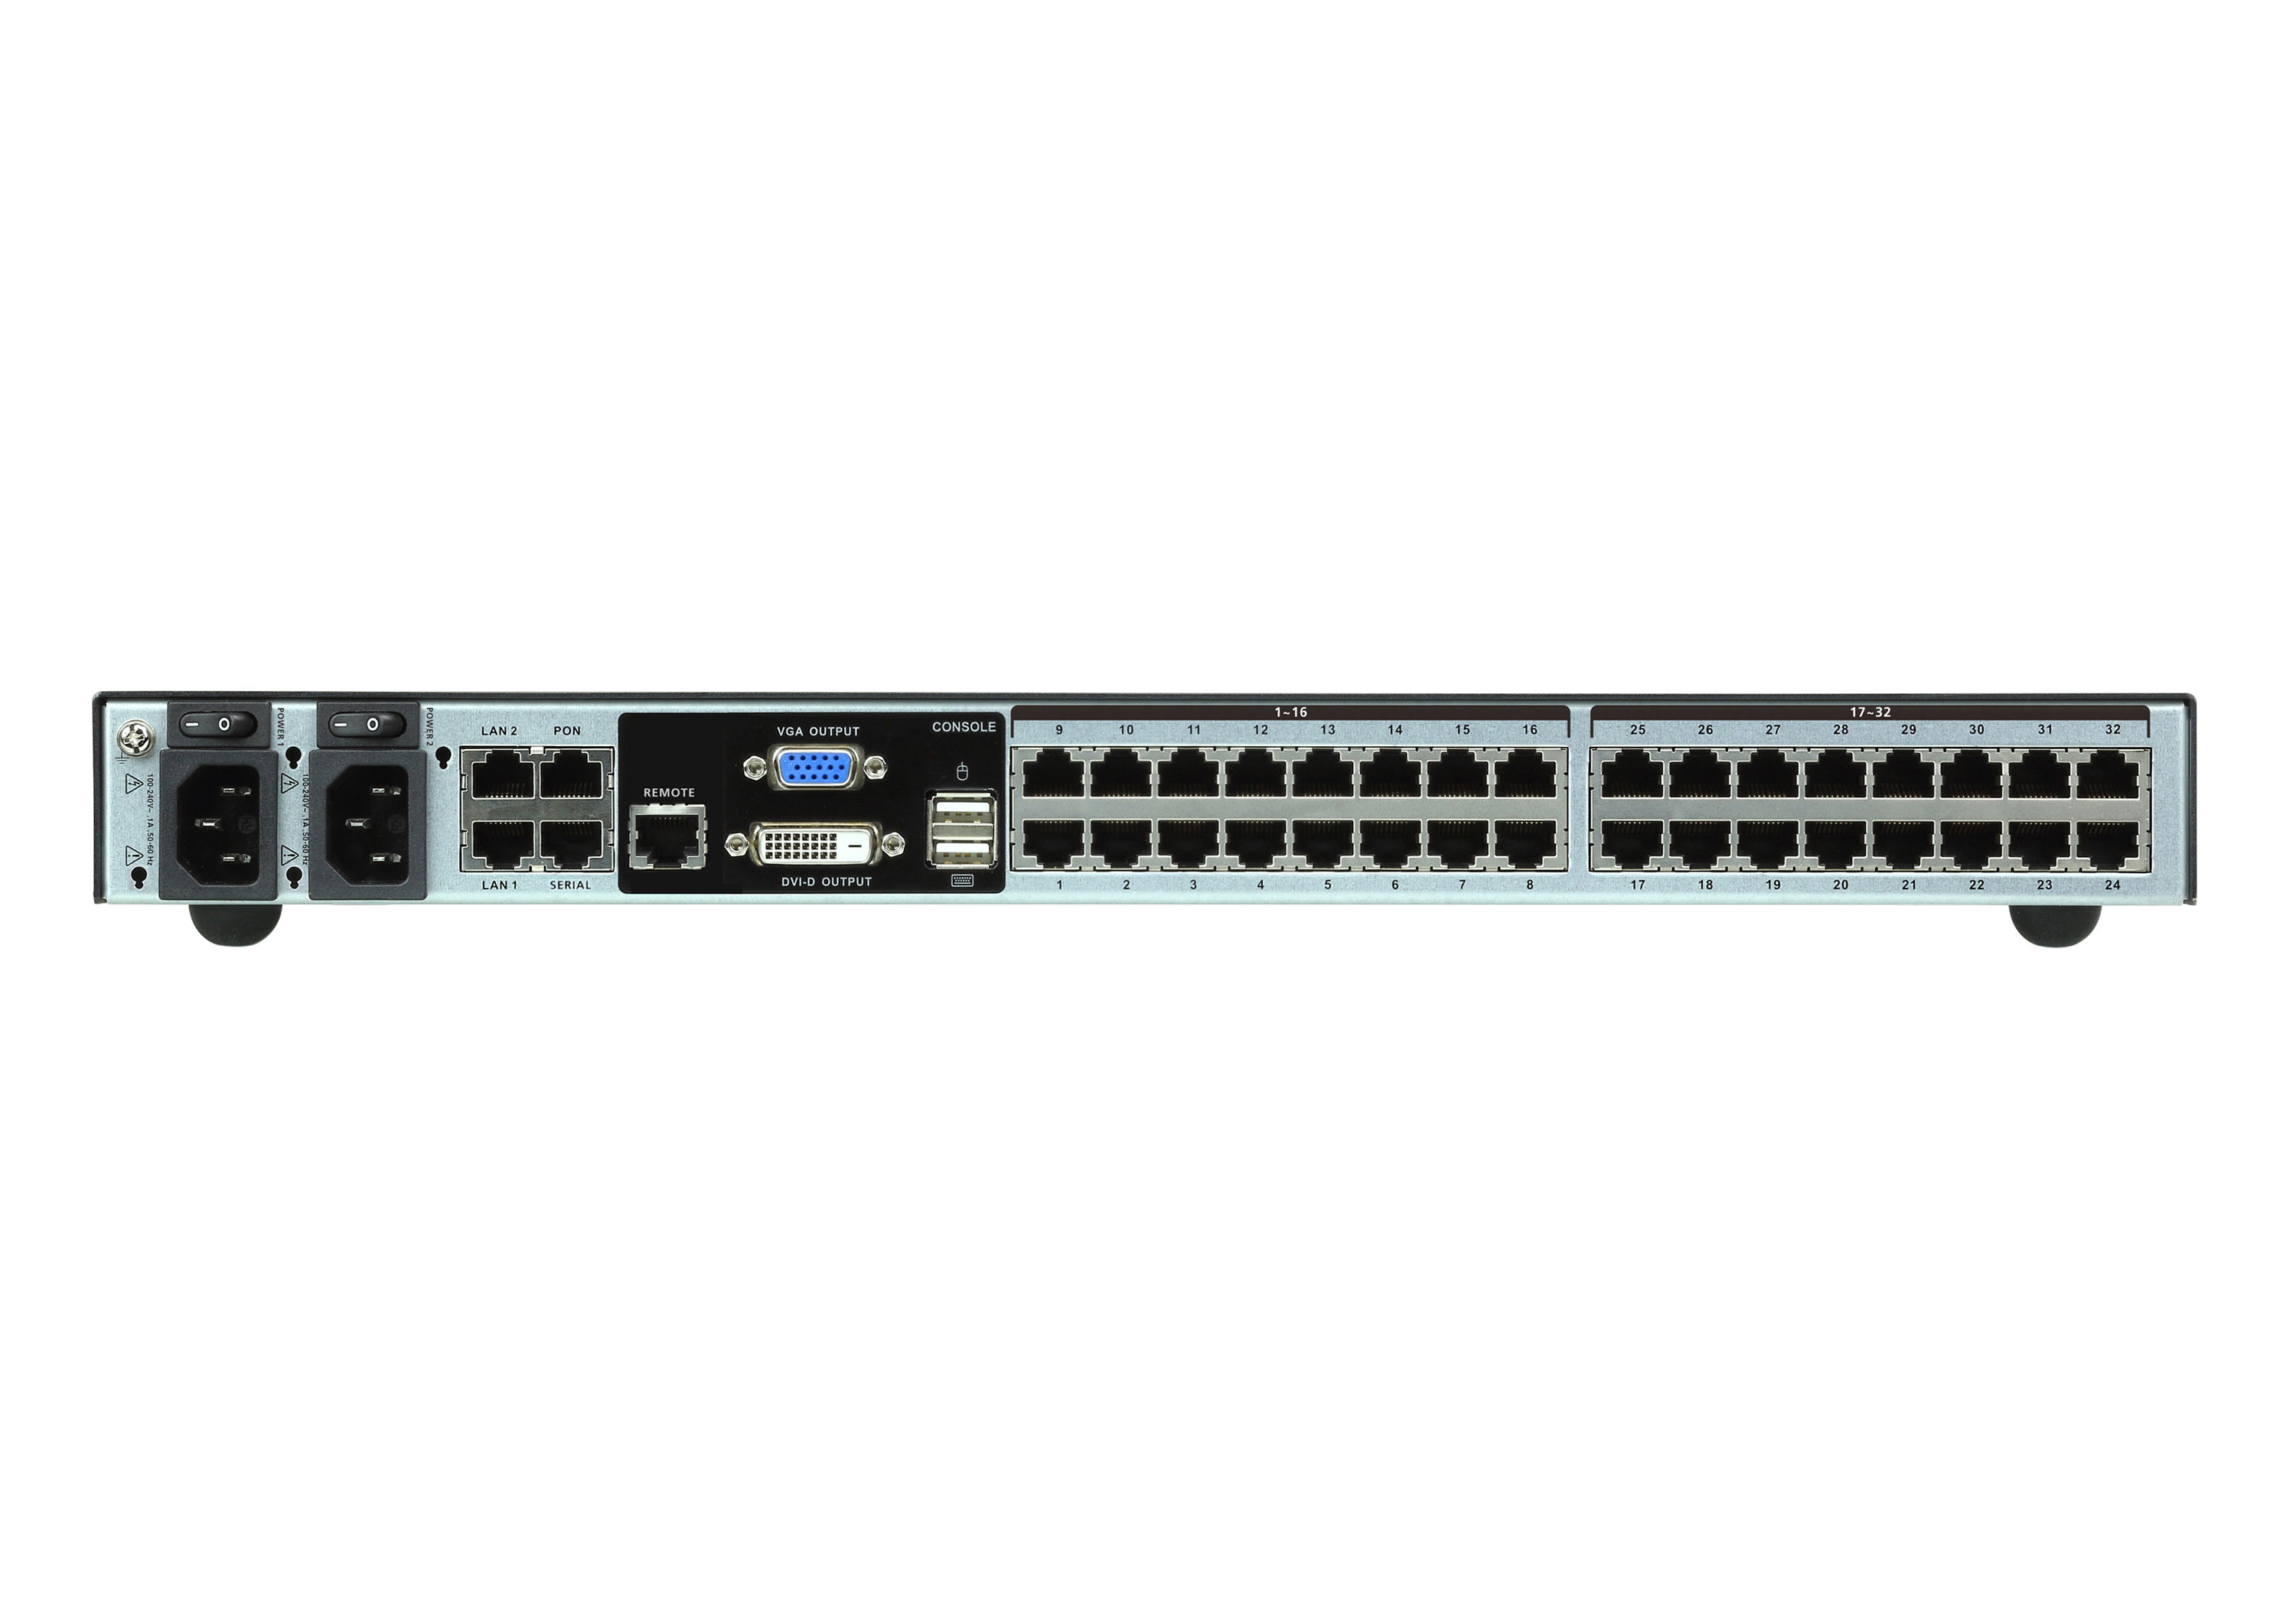 1-Local/4-Remote  Access 40-Port Multi-Interface Cat 5 KVM over IP Switch-2